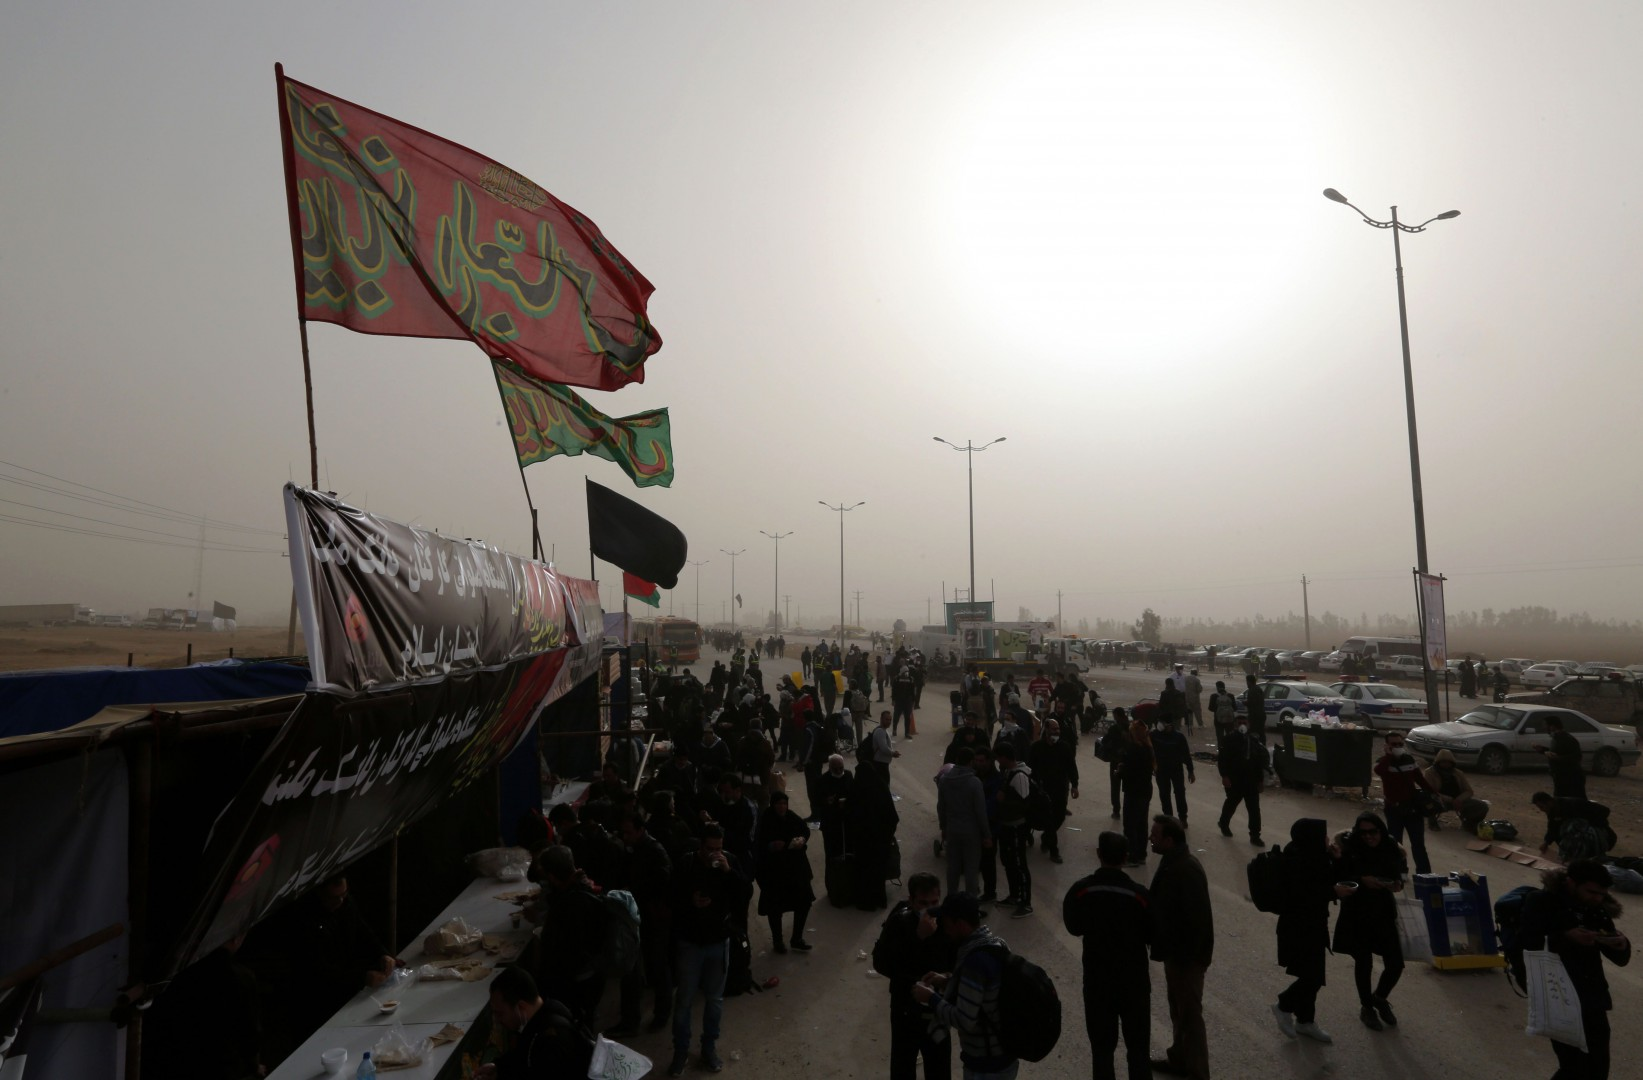 Iranian Shiite Muslim pilgrims walk at the Iranian-Iraqi Mehran border as they head towards the central Iraqi shrine city of Karbala on October 27, 2018, ahead of the Arbaeen religious festival which marks the 40th day after Ashura, commemorating the seventh century killing of the Prophet Mohammed's grandson Imam Hussein. (Photo by ATTA KENARE / AFP)